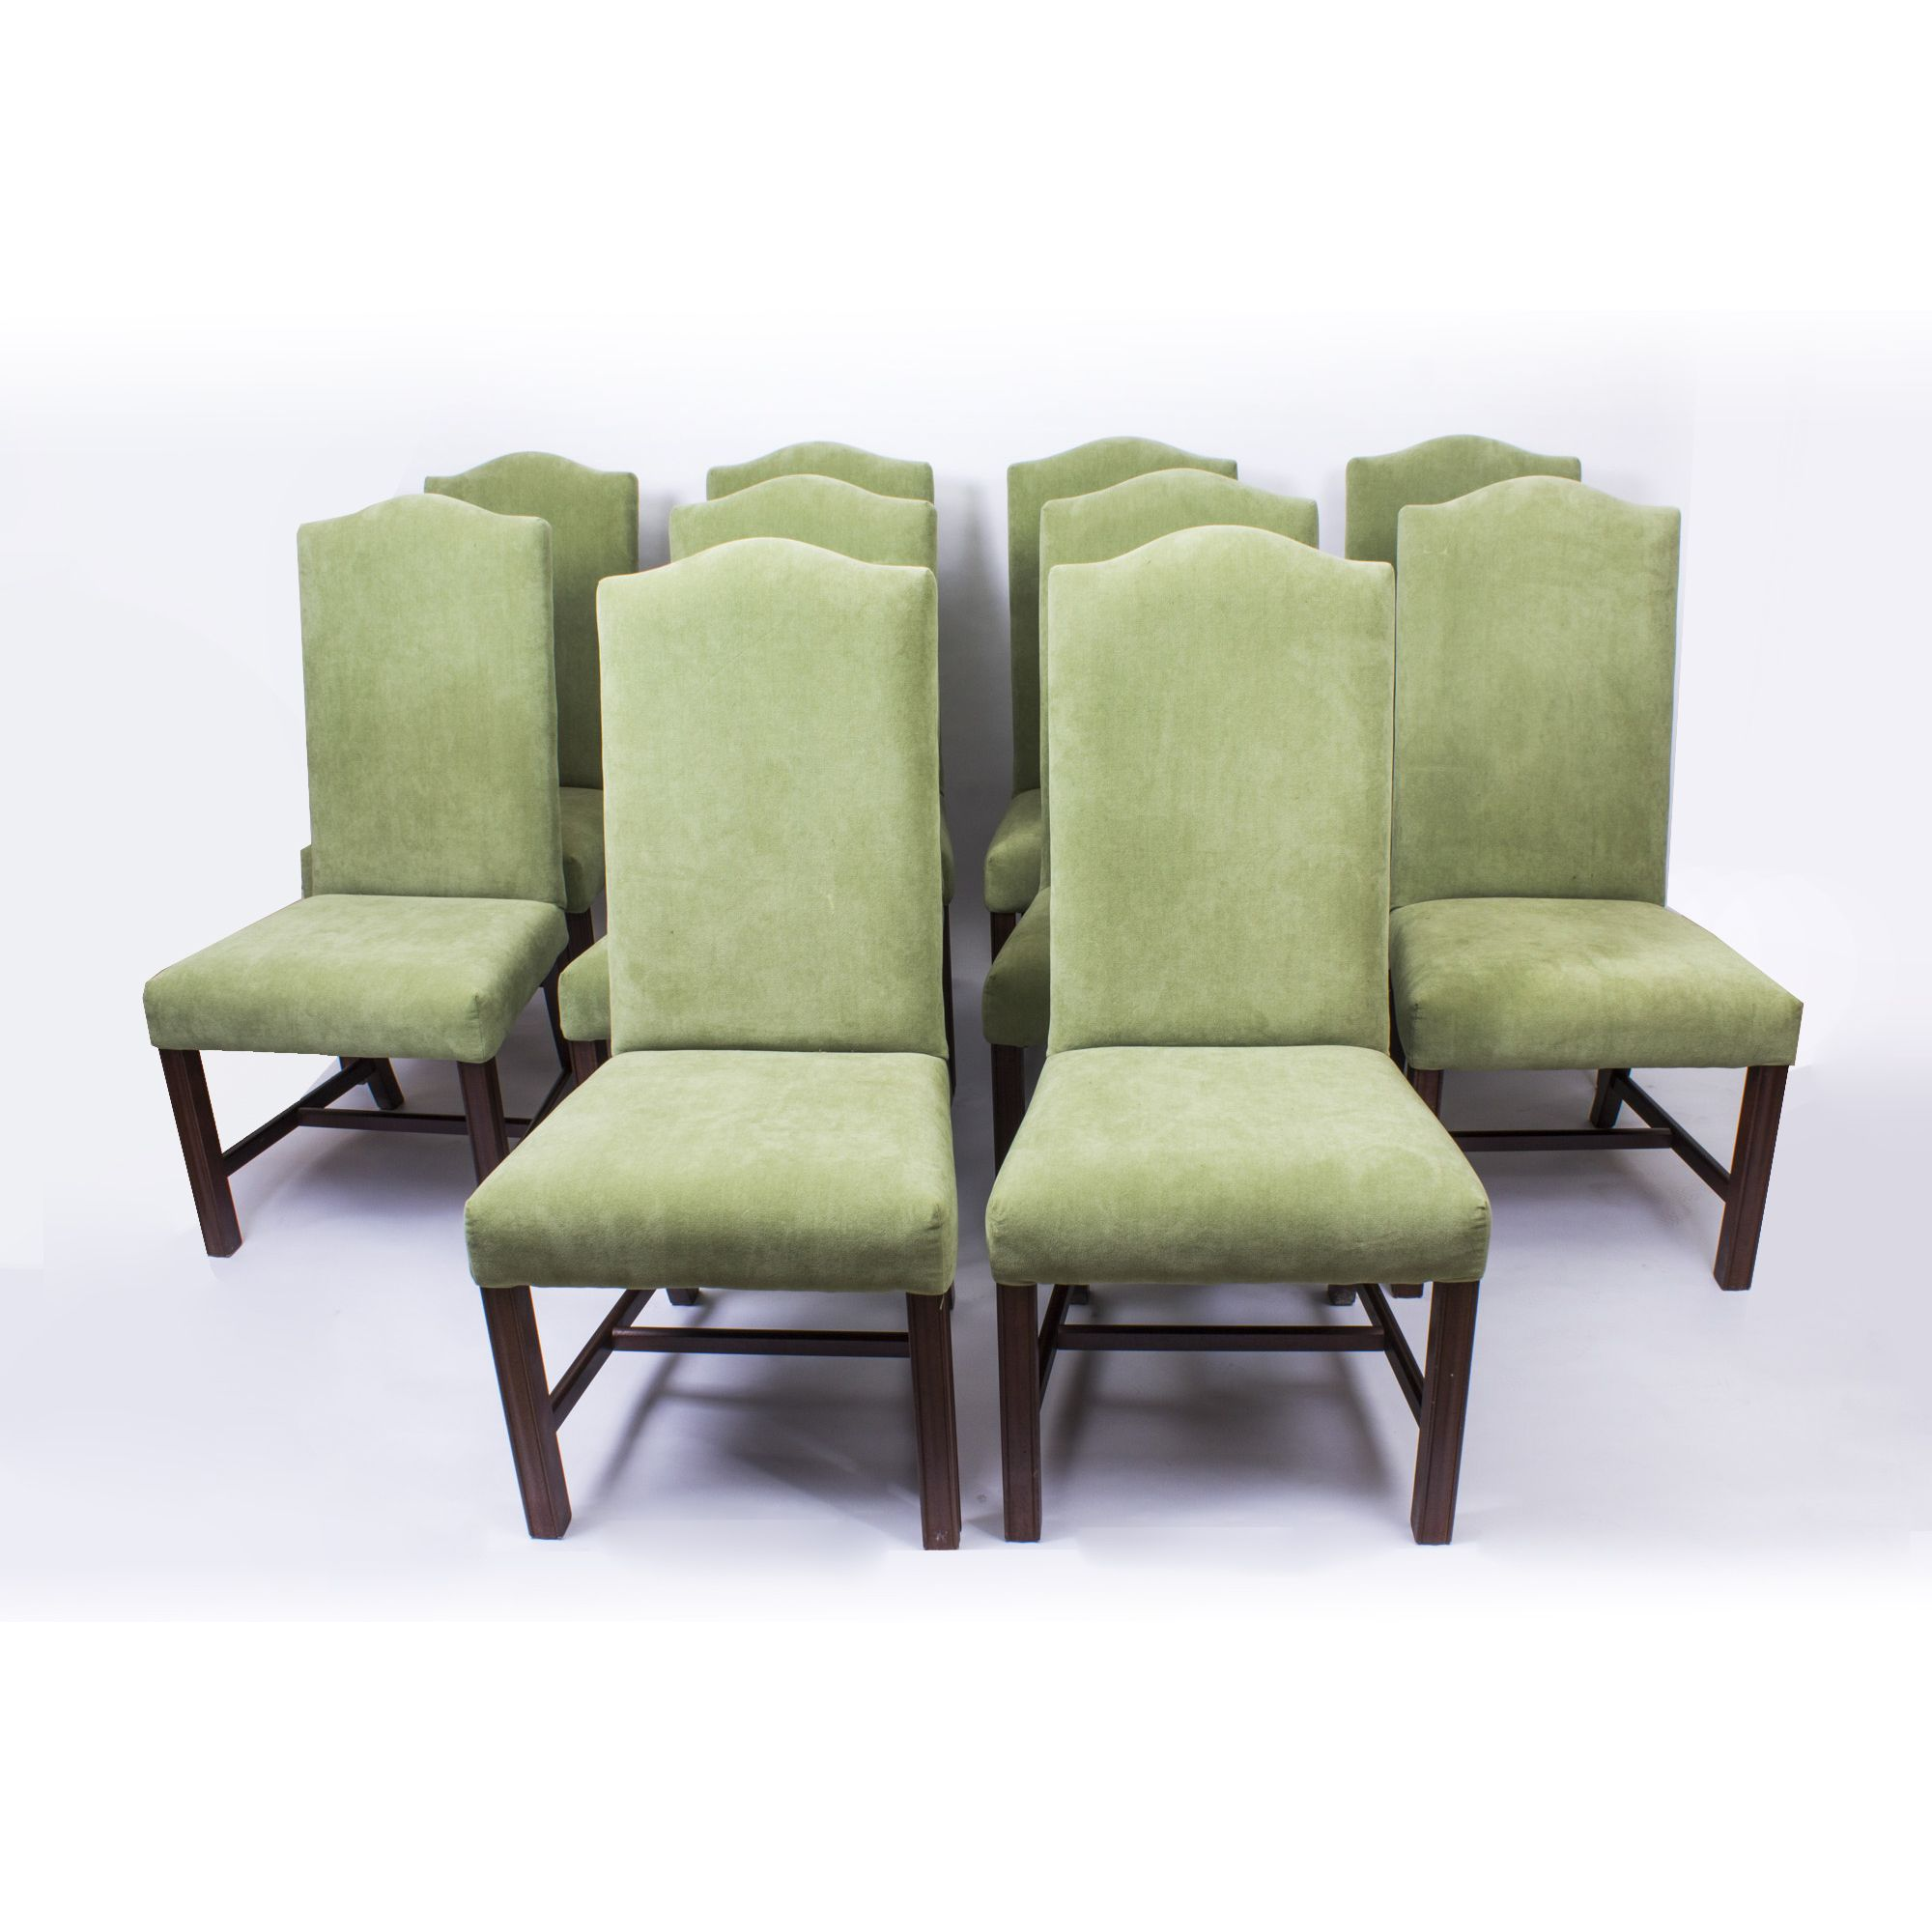 An Absolutely Fantastic English Made Set Of Ten Dining Chairs, Dating From  The Second Half